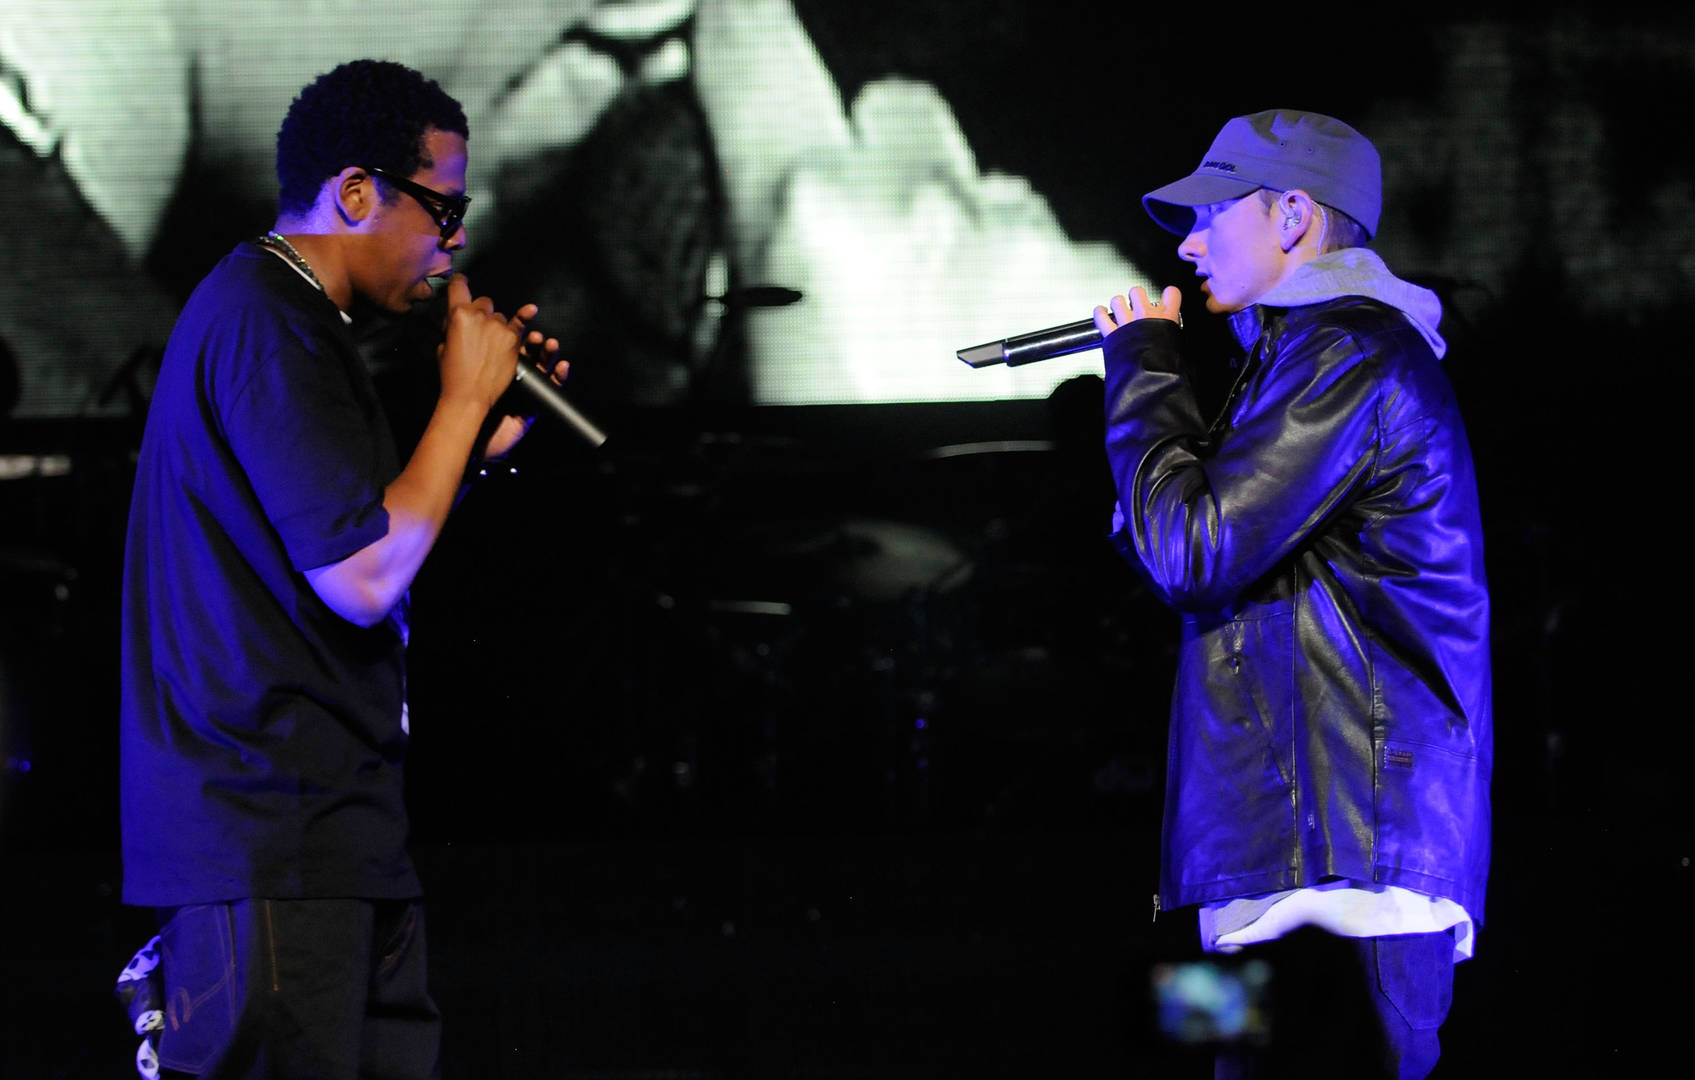 Eminem Ties Jay-Z For Legendary Billboard Top 10 Count